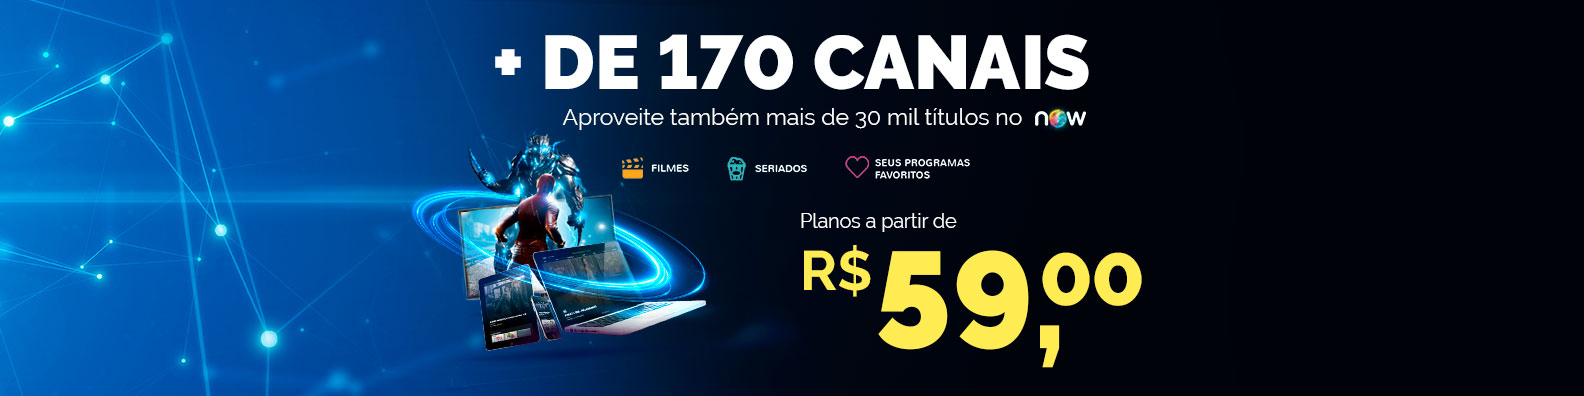 NET LIGHT HD no combo por R$59,90*